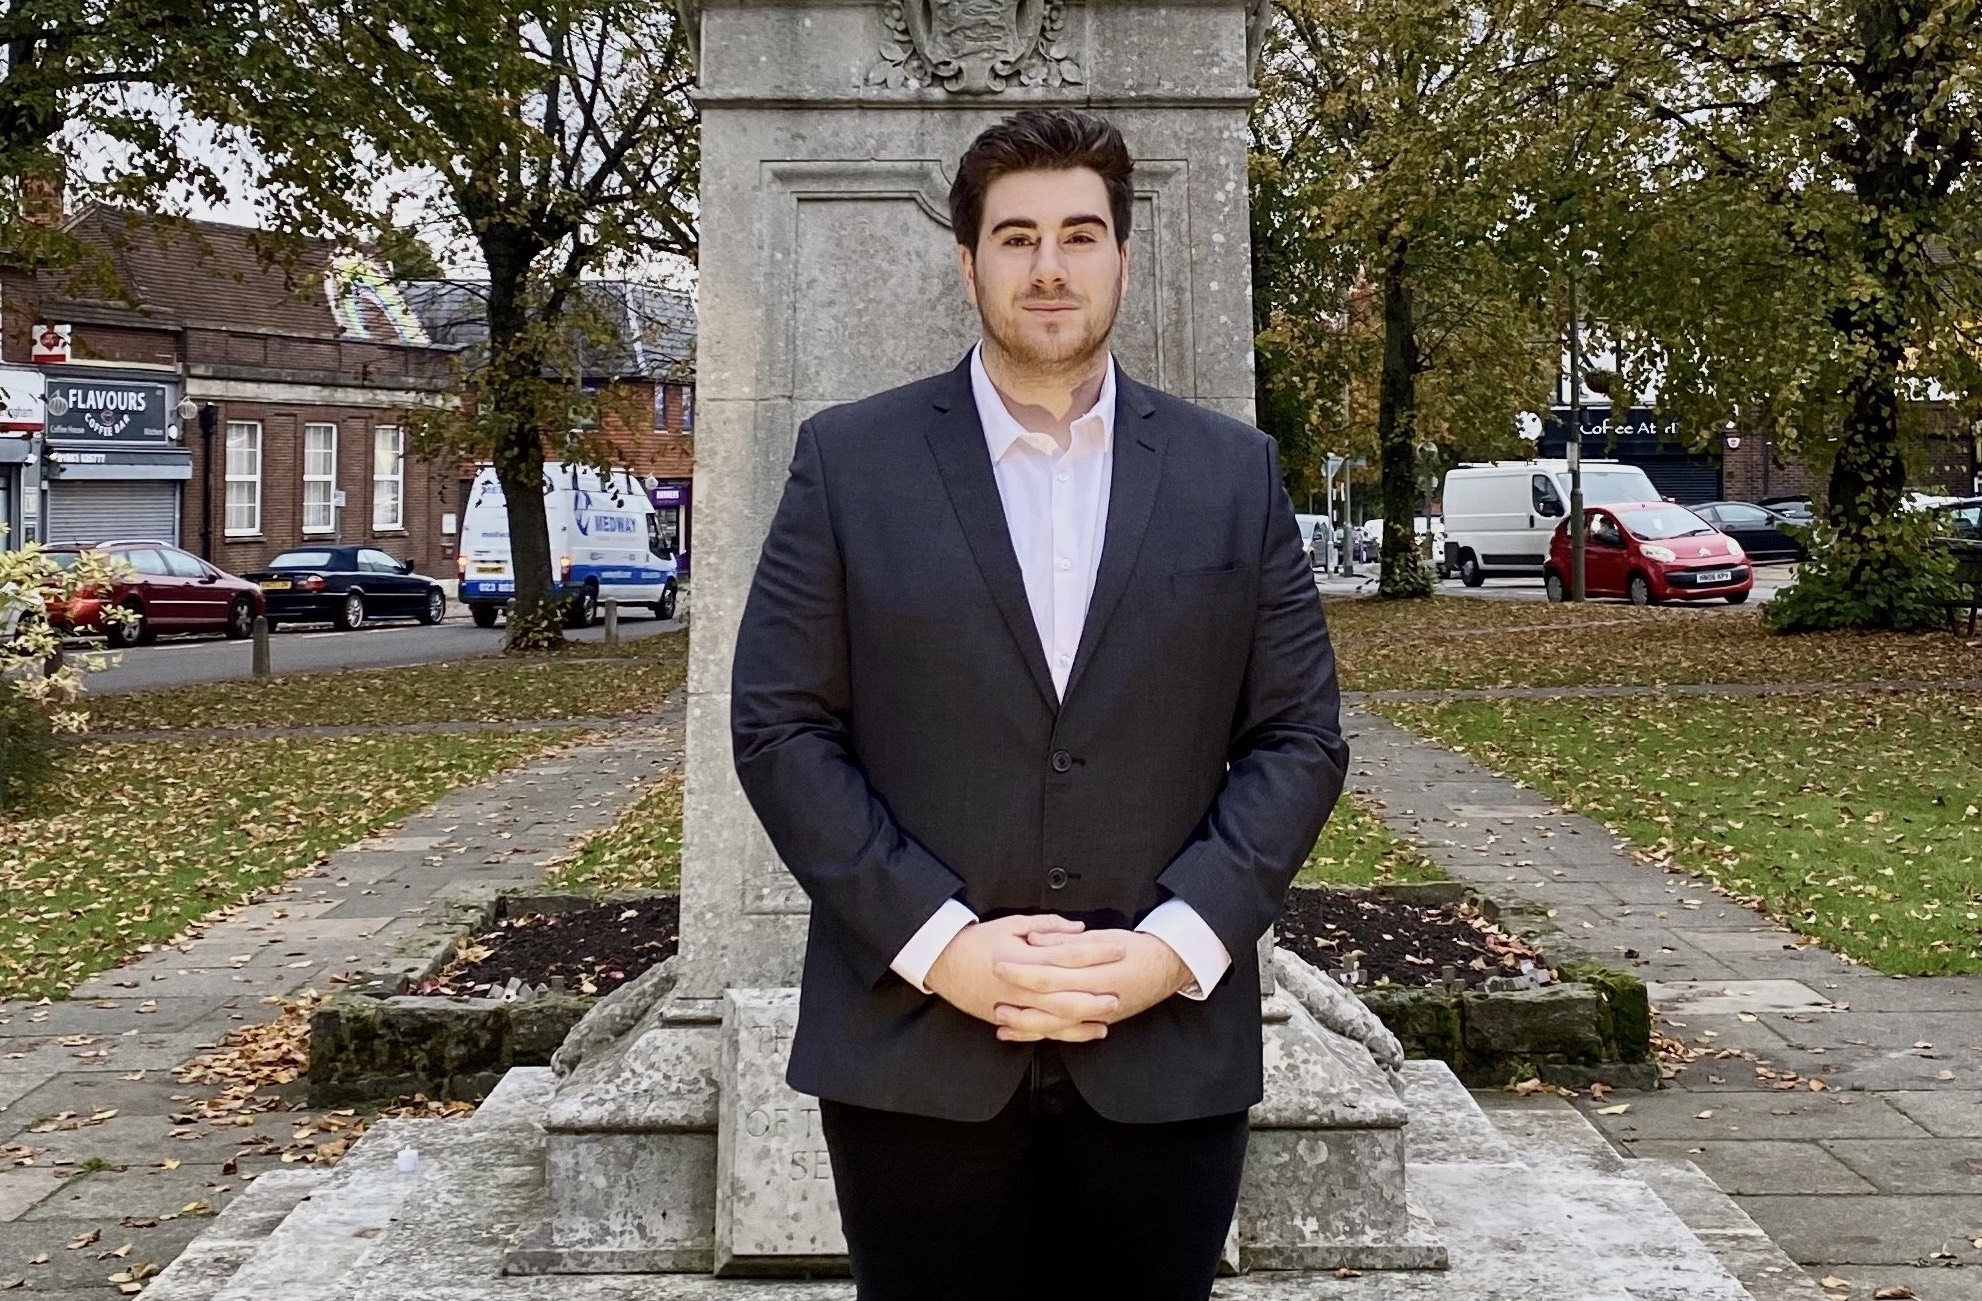 Josh Newman stood in front of statue